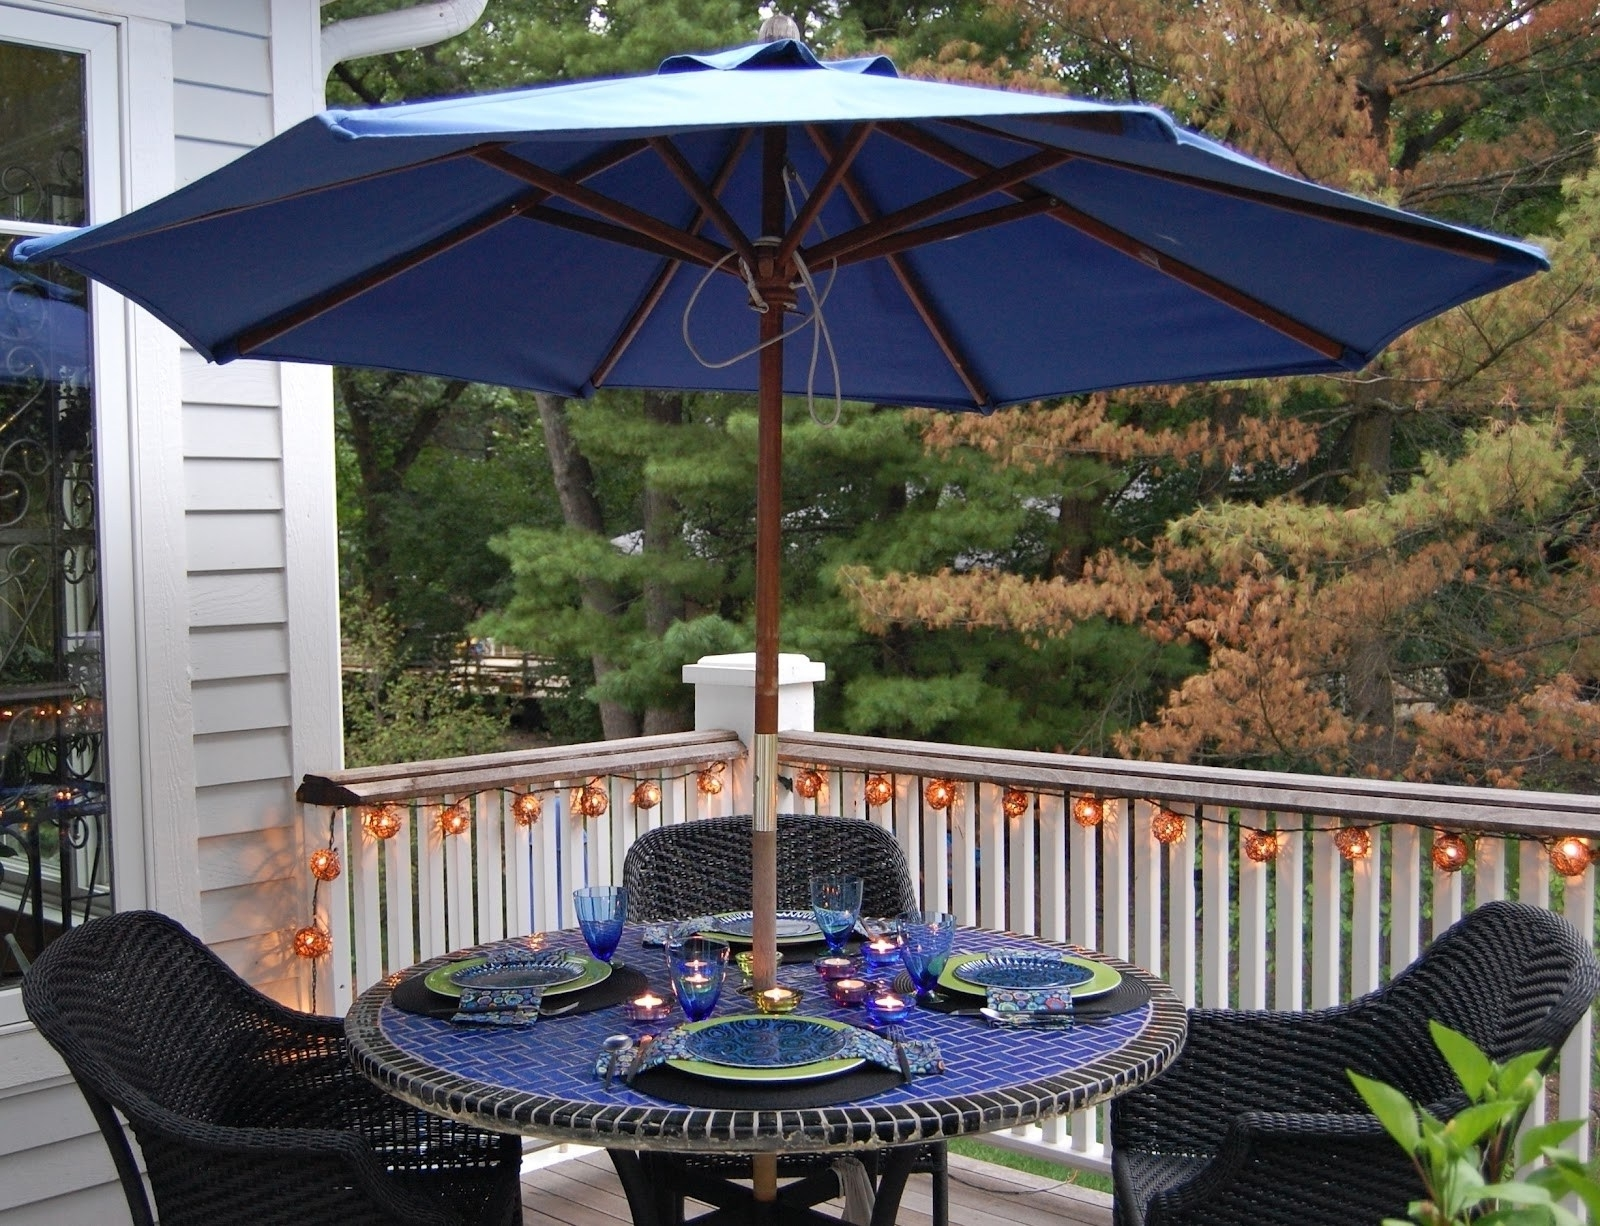 Patio: Amazing Small Patio Table With Umbrella Outdoor Furniture Throughout Favorite Patio Tables With Umbrellas (View 15 of 20)